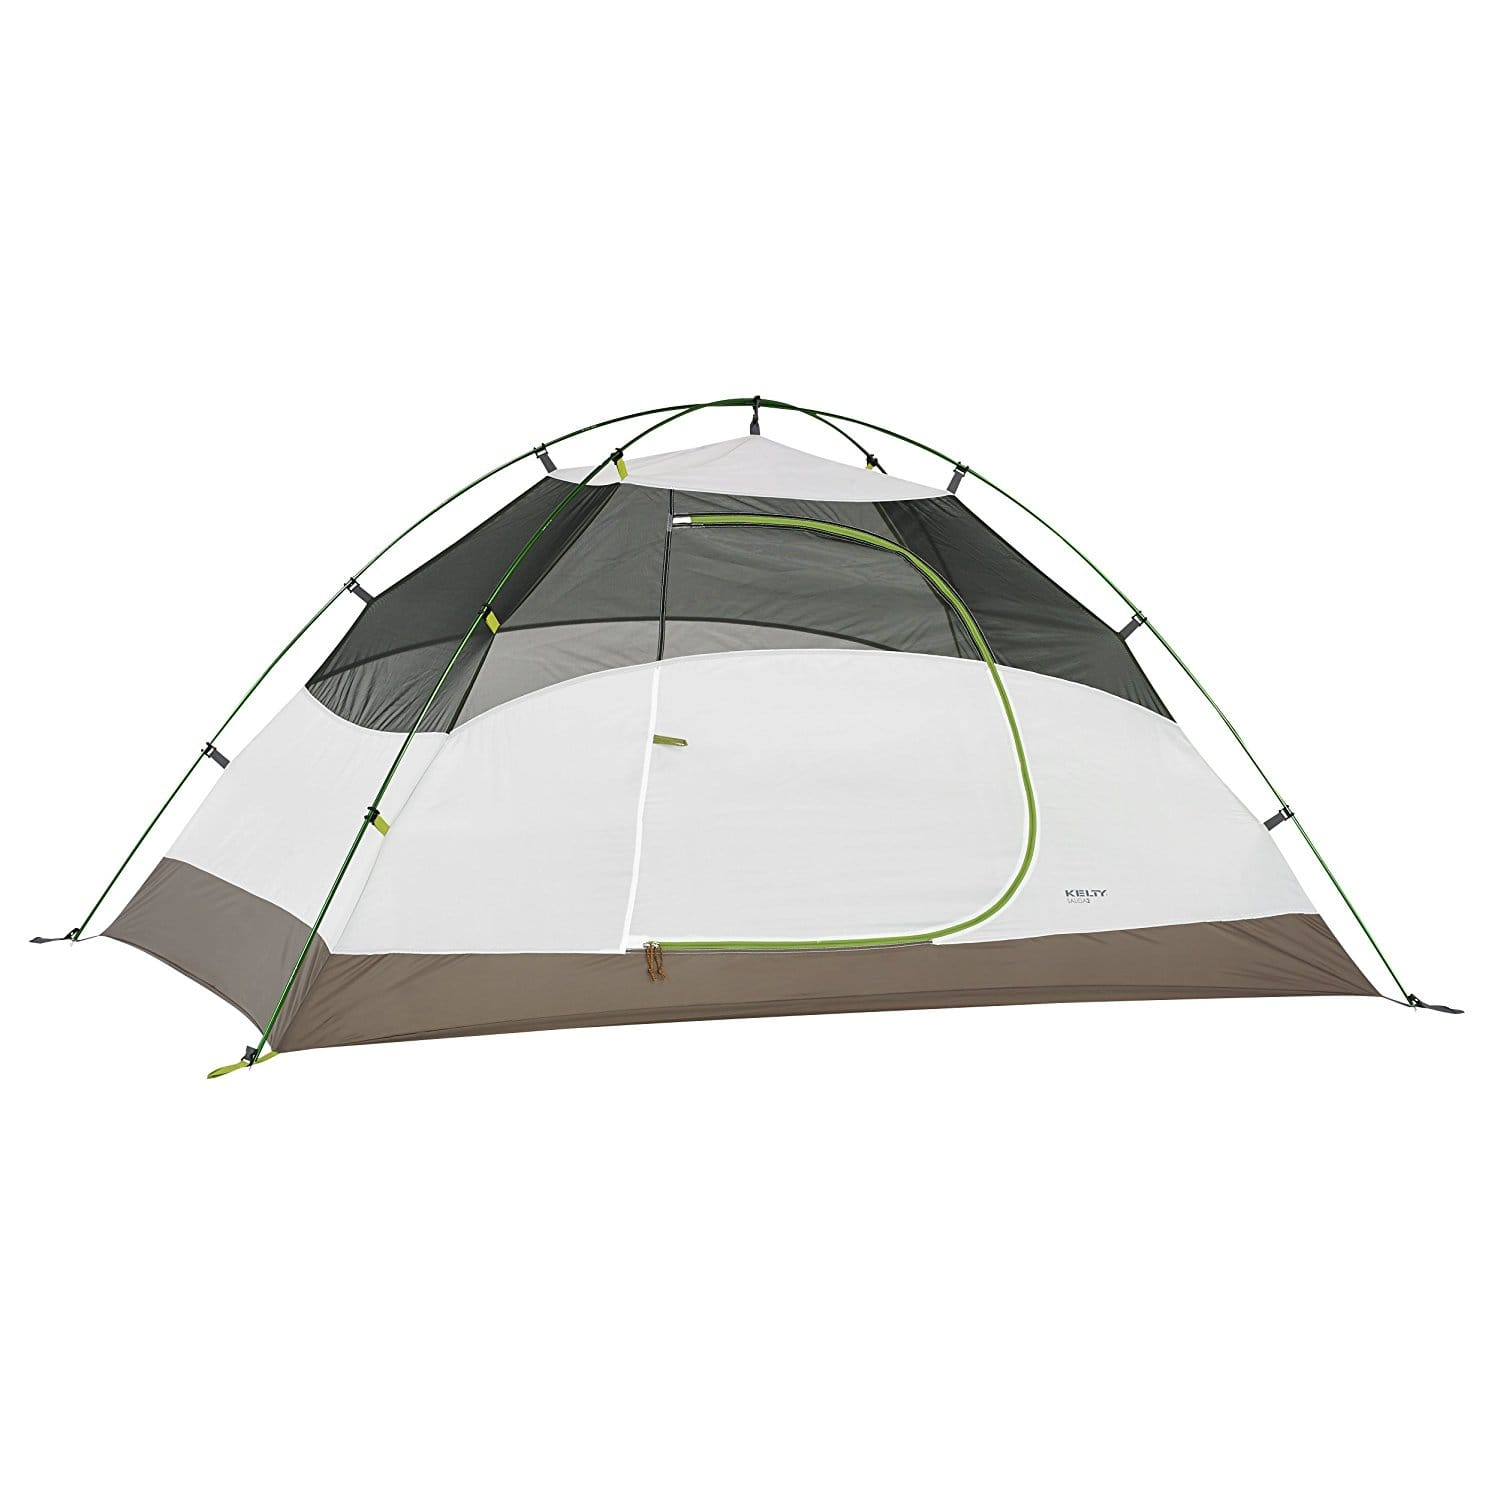 Kelty Salida 2 Tent - 2 Person, 3 Season - $82.79 FS @ CampSaver